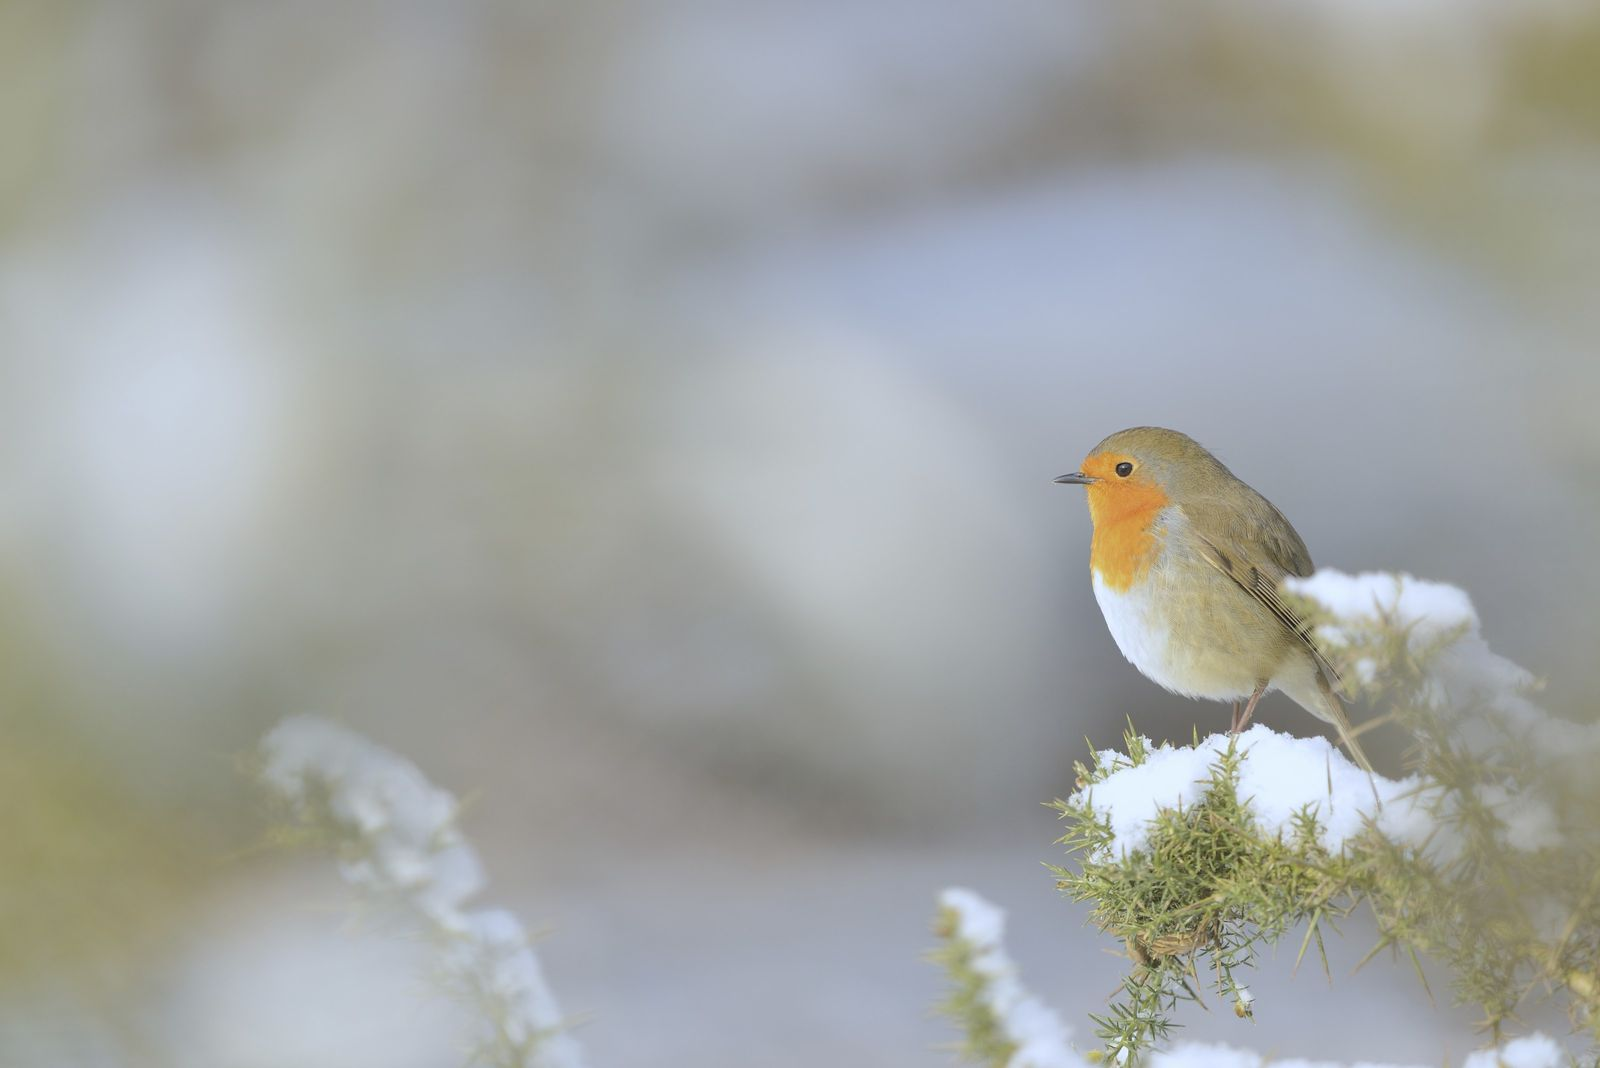 Male robins may hold the same territory throughout their lives, singing (and fighting) to defend their ...